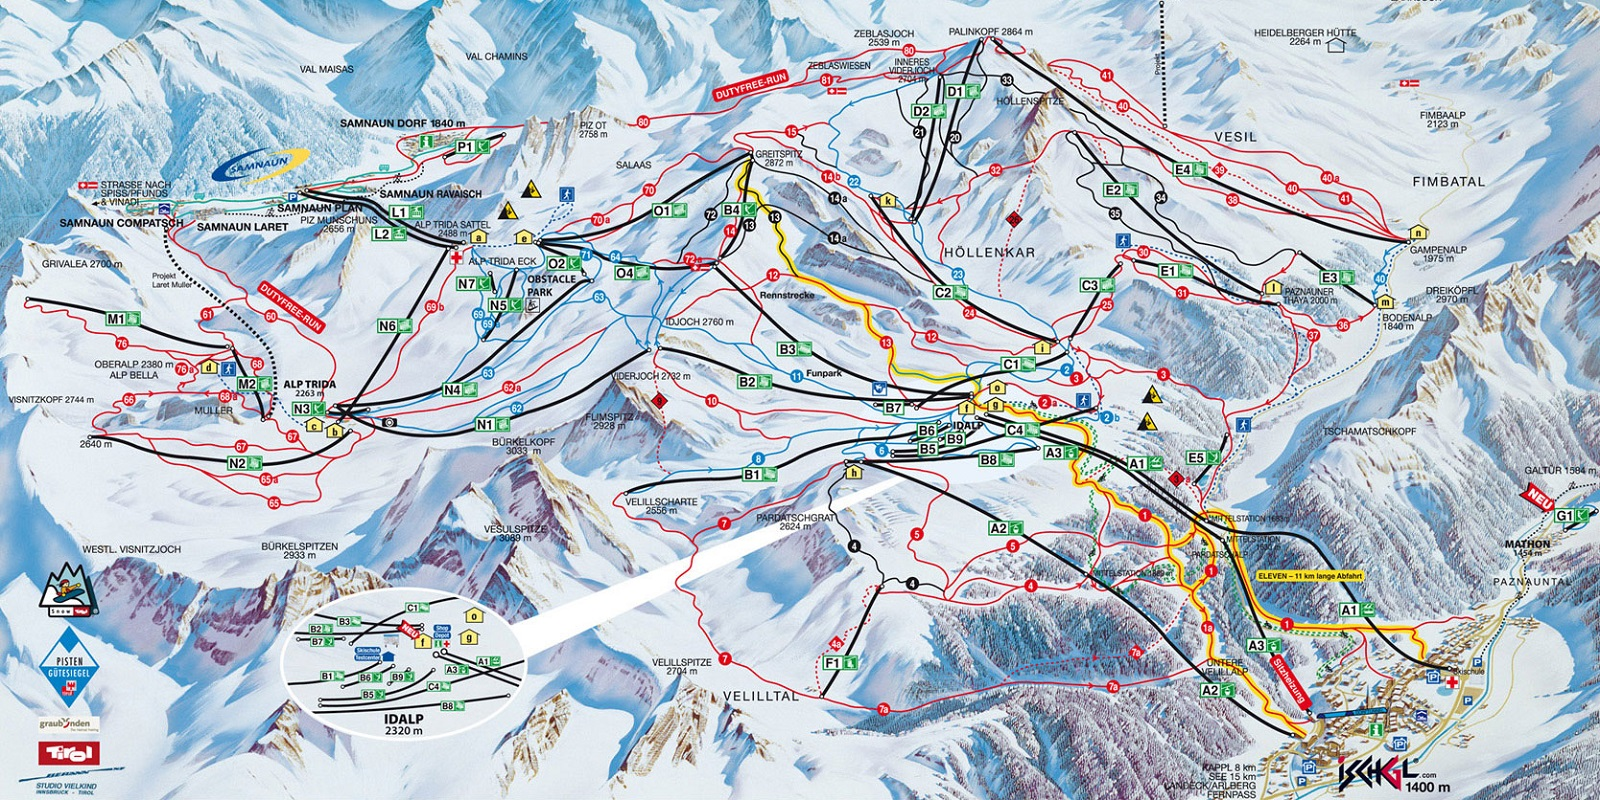 Схема трасс в Ишгль (Ski map Ischgl)